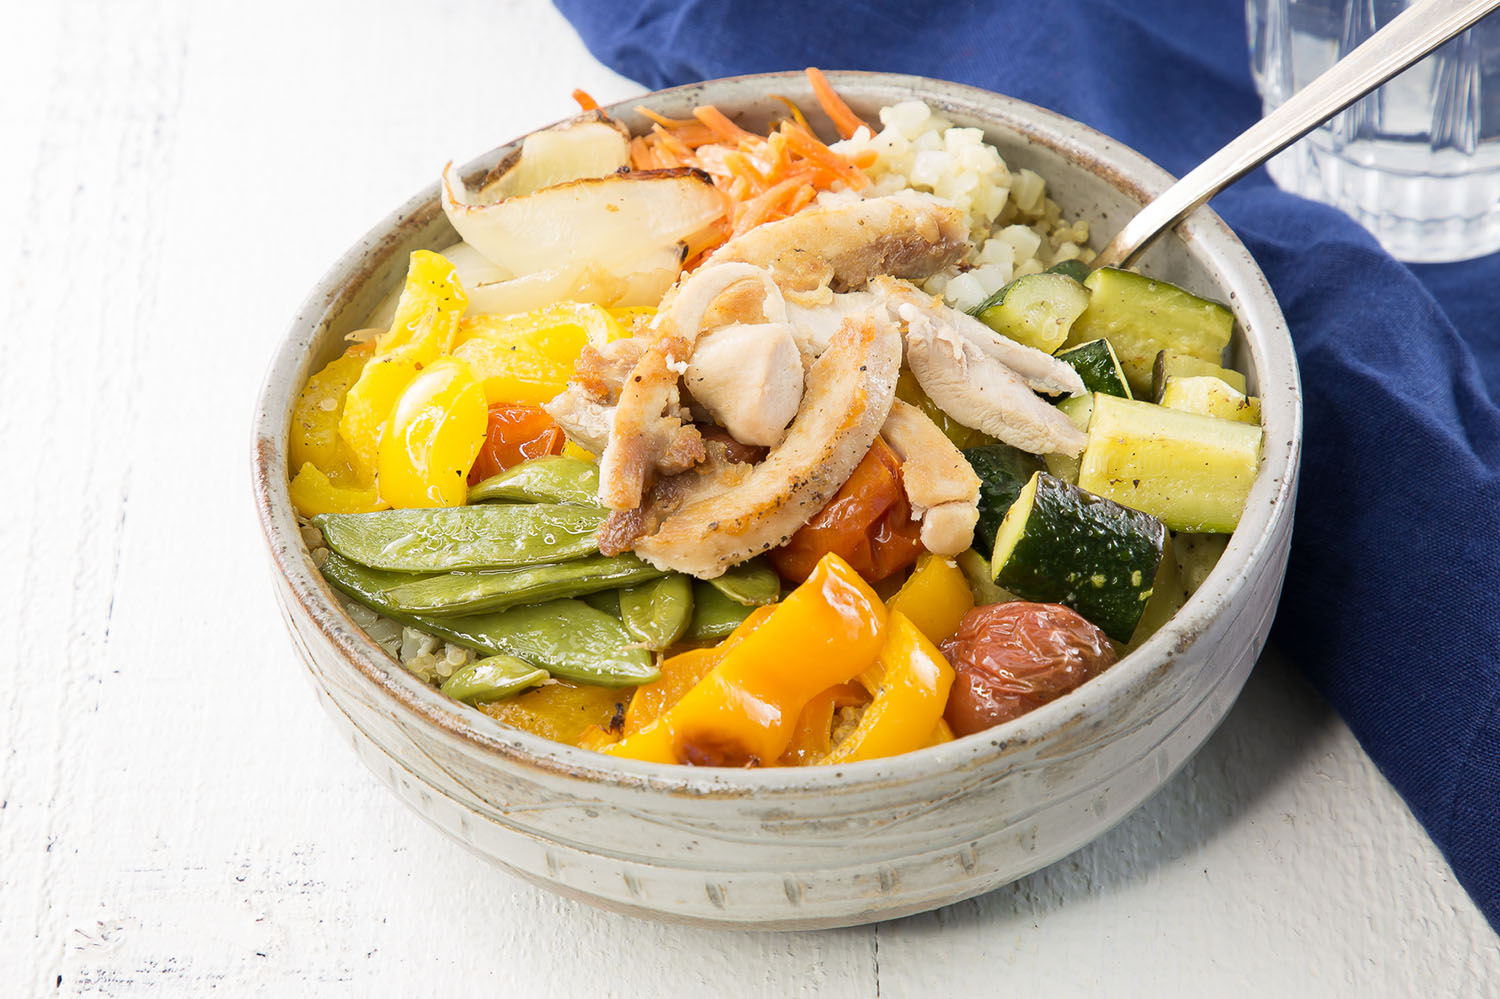 close up of roasted chicken and veggies in a rice bowl